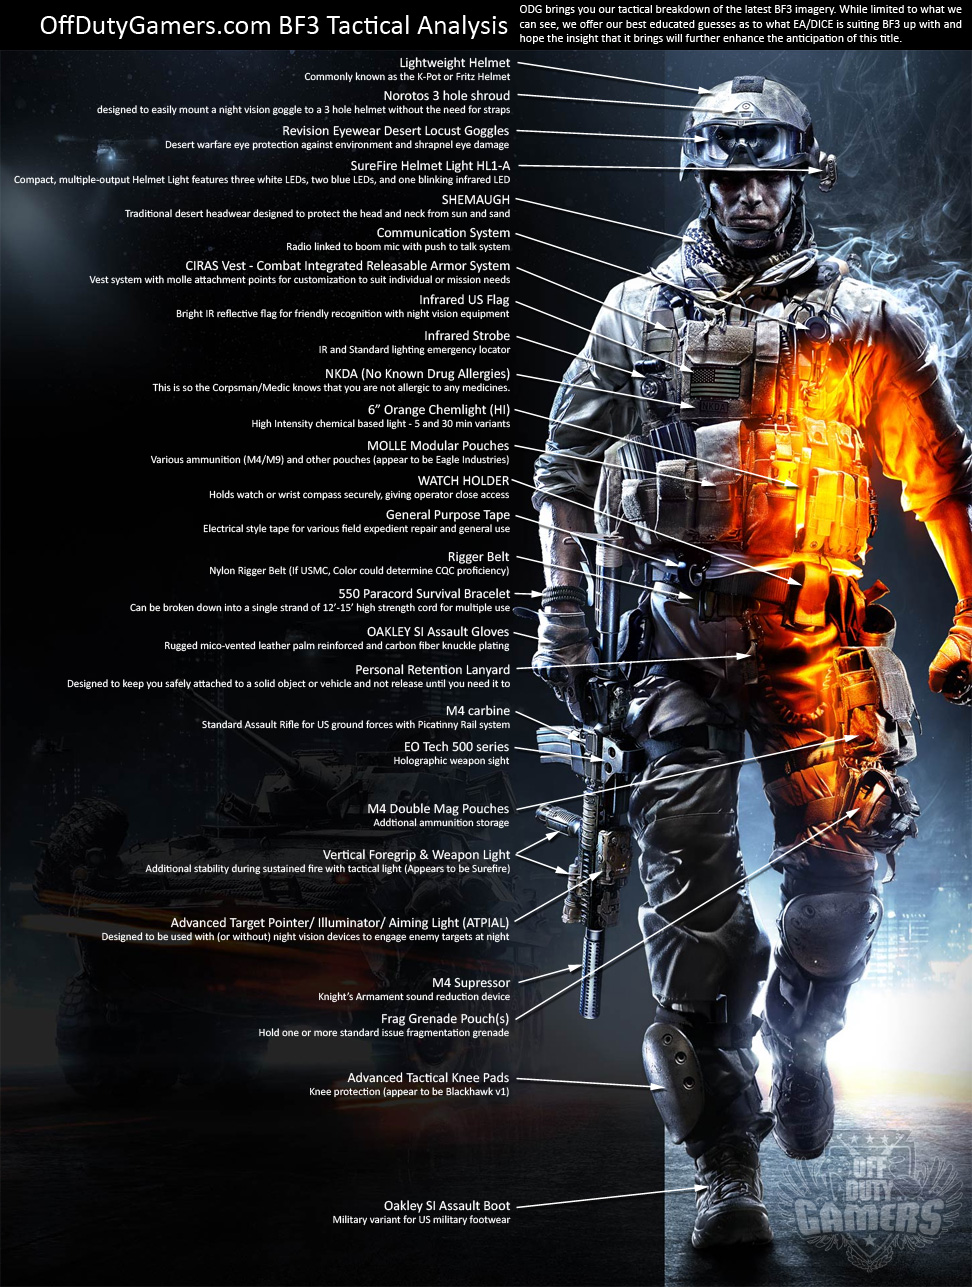 BF3 Tactical Breakdown